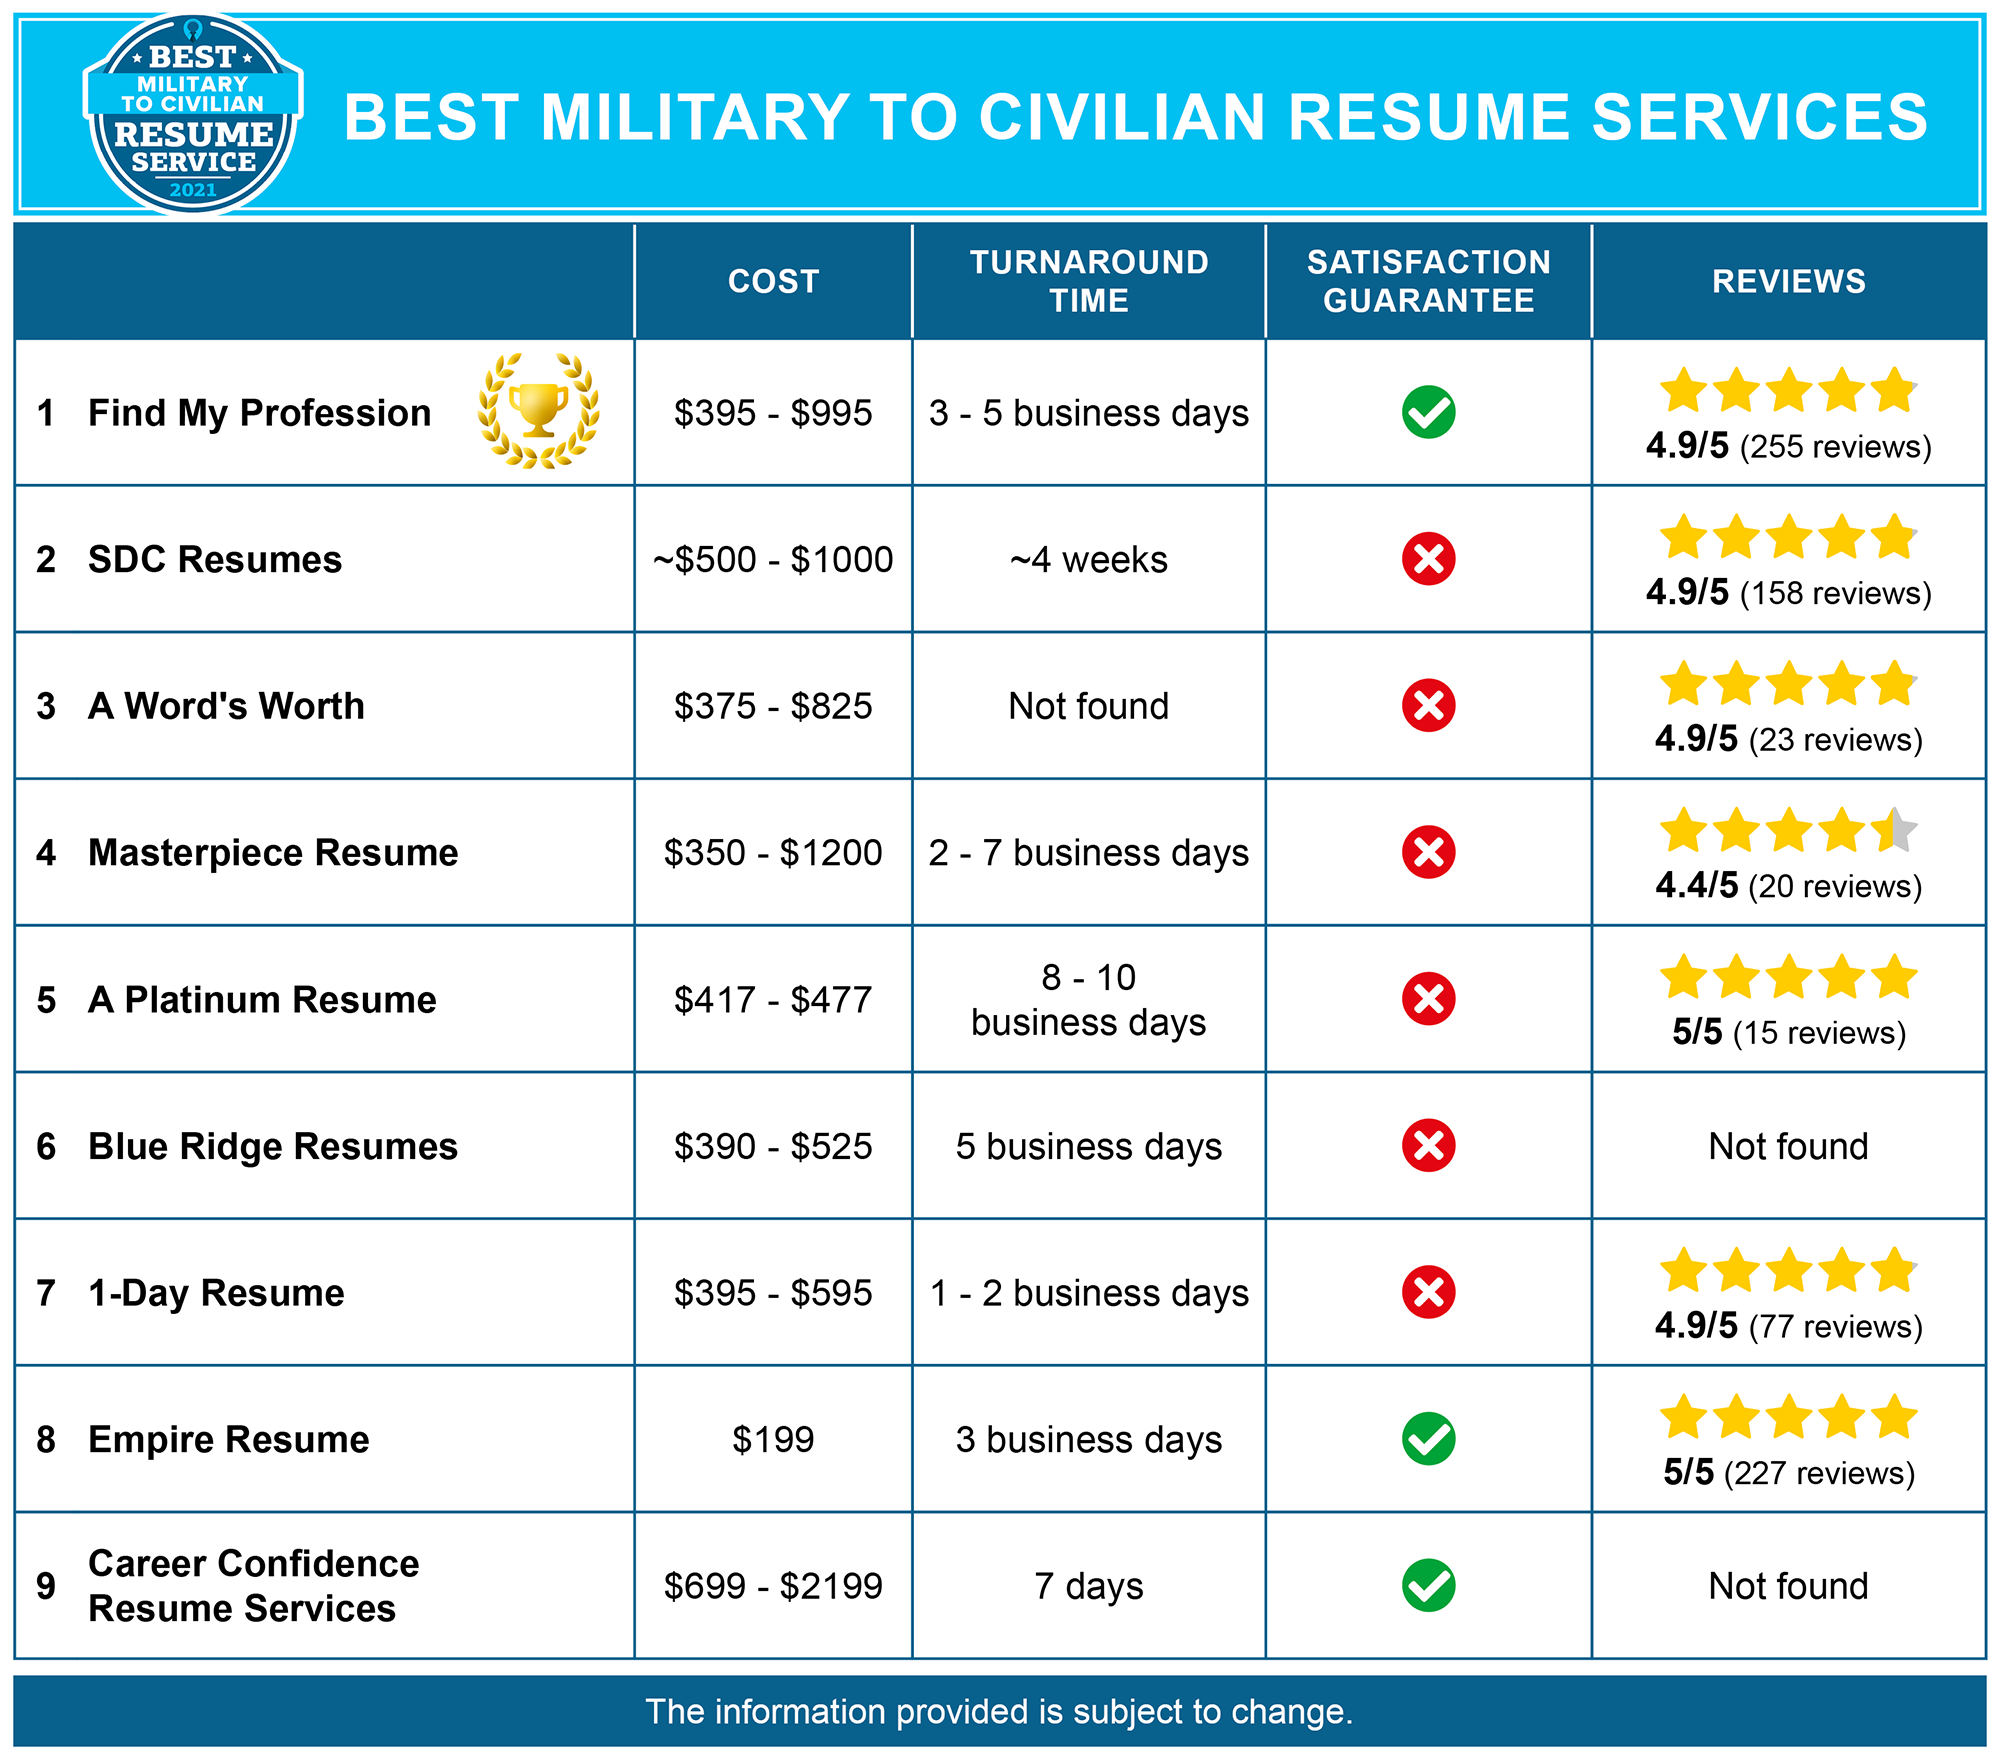 Best Military to Civilian Resume Services